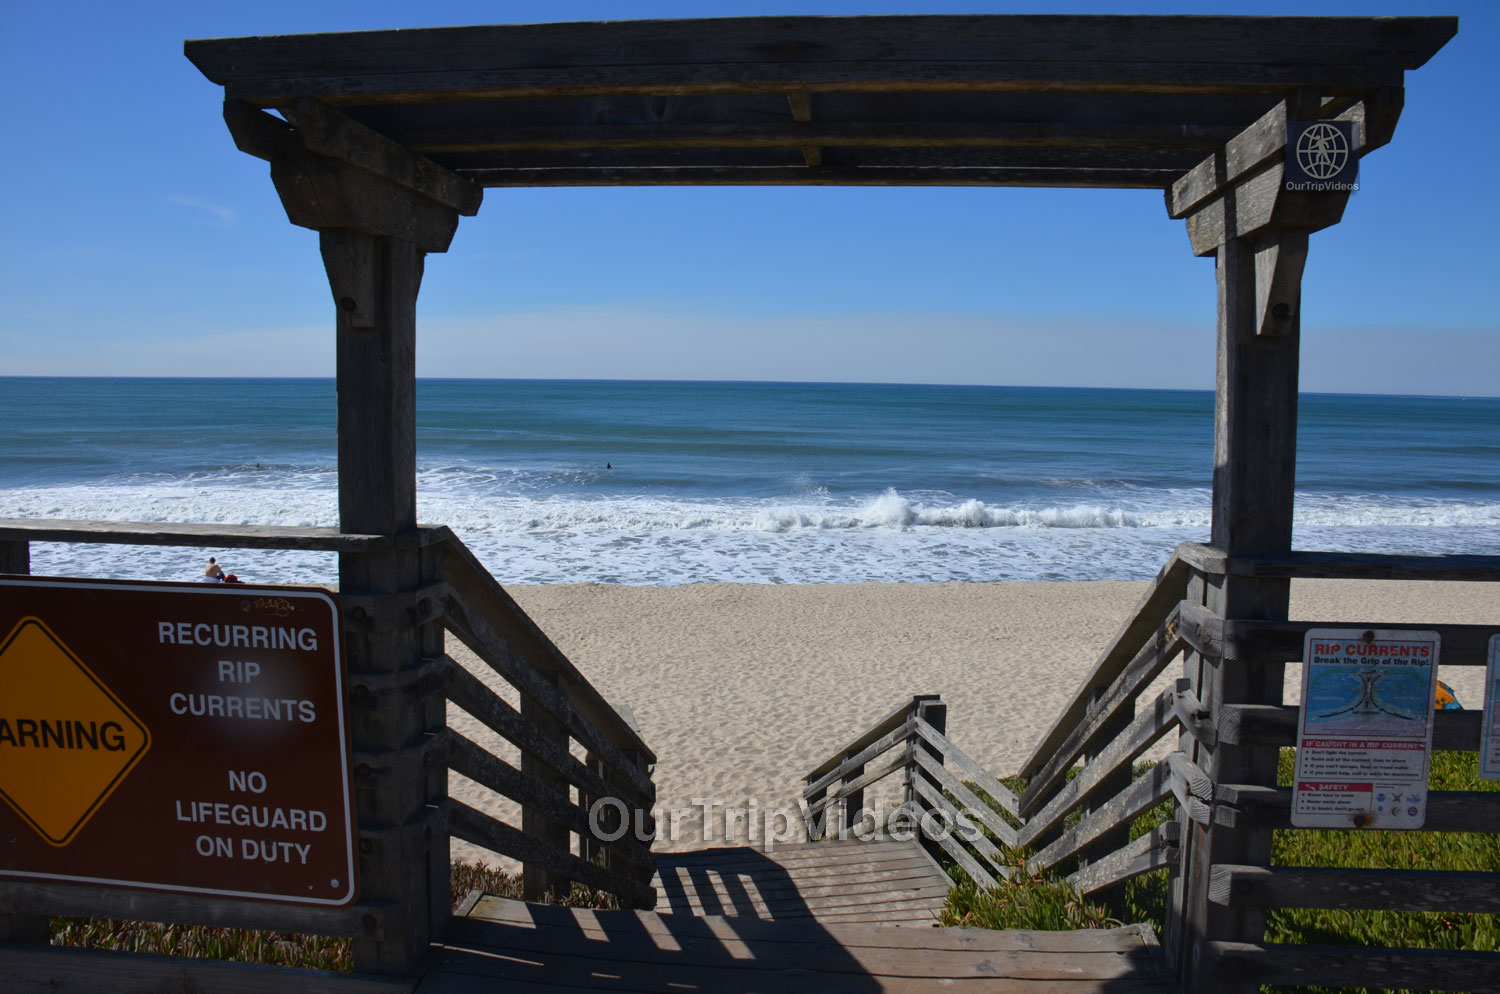 State Beach(Francis Beach), Half Moon Bay, CA, USA - Picture 14 of 25